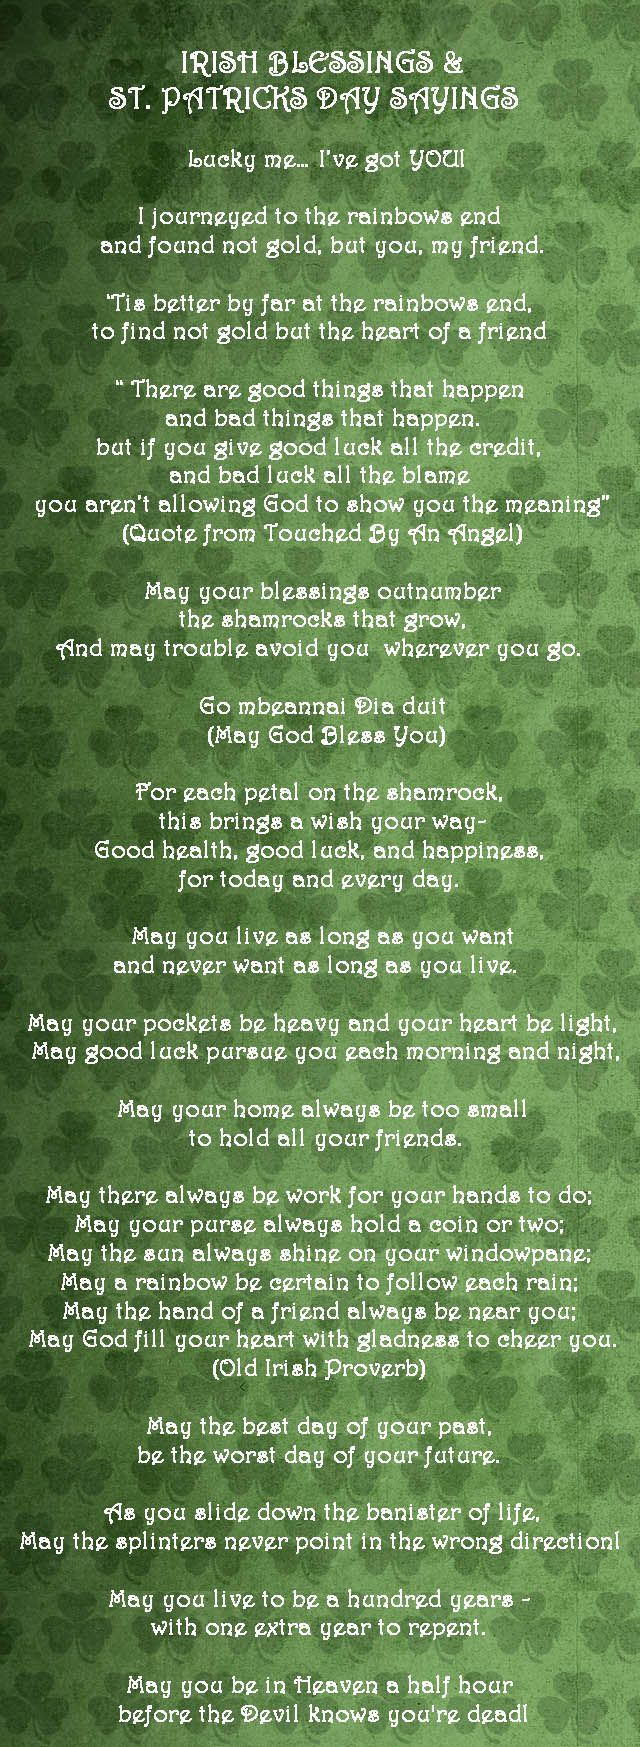 Irish Blessings & St. Patrick's Day Sayings